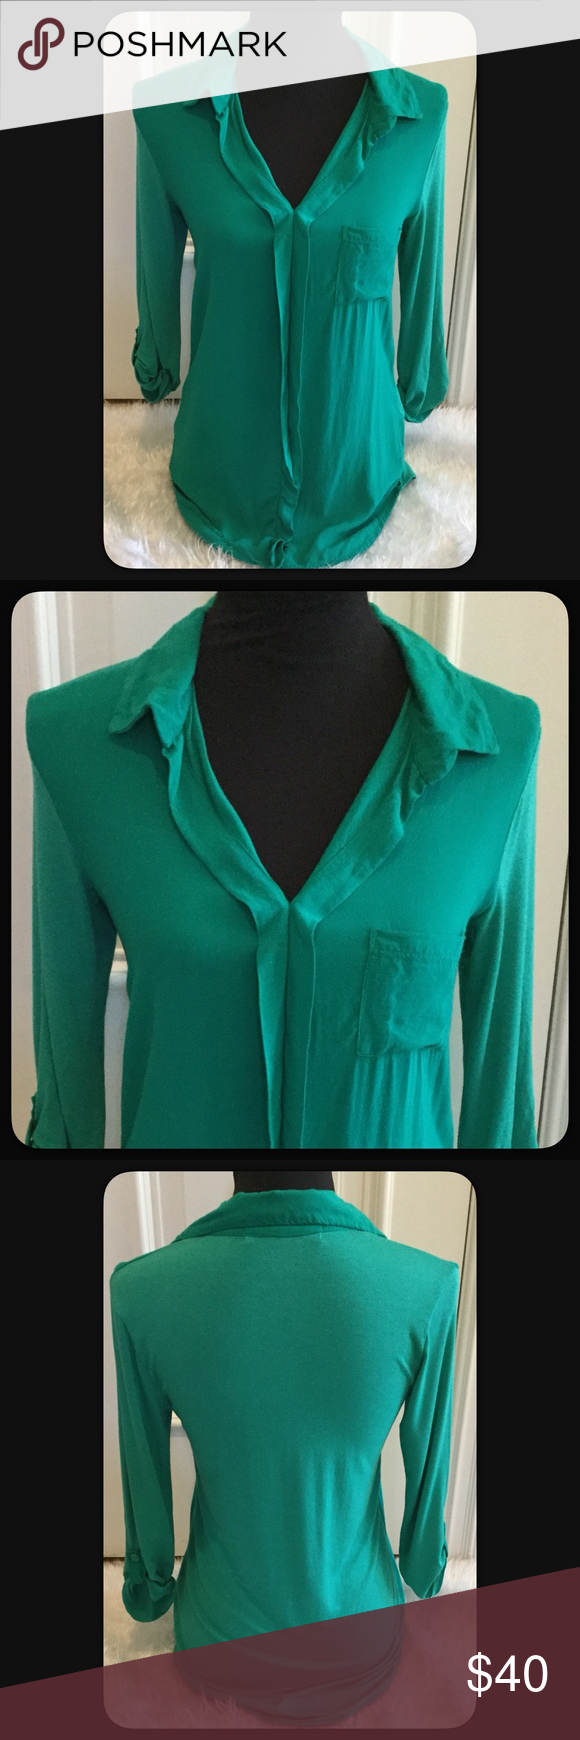 """🆕Vintage Havana Green Top Pretty two tone Kelly green top by Vintage Havana. The front, collar & tabs on sleeves are a Kelly green, the back and sleeves are a shade or two lighter. Super soft & comfortable. Looks great with leggings, jeans, shorts, skirts. Measures approximately from center 27"""" front 29"""" back, the sides about 23""""-24"""" long. Armpit to armpit 17"""" across. Pretty soft top. EUC. Worn twice. Material 100% Rayon. From Bloomingdales. Made in NYC. Vintage Havana Tops Blouses"""